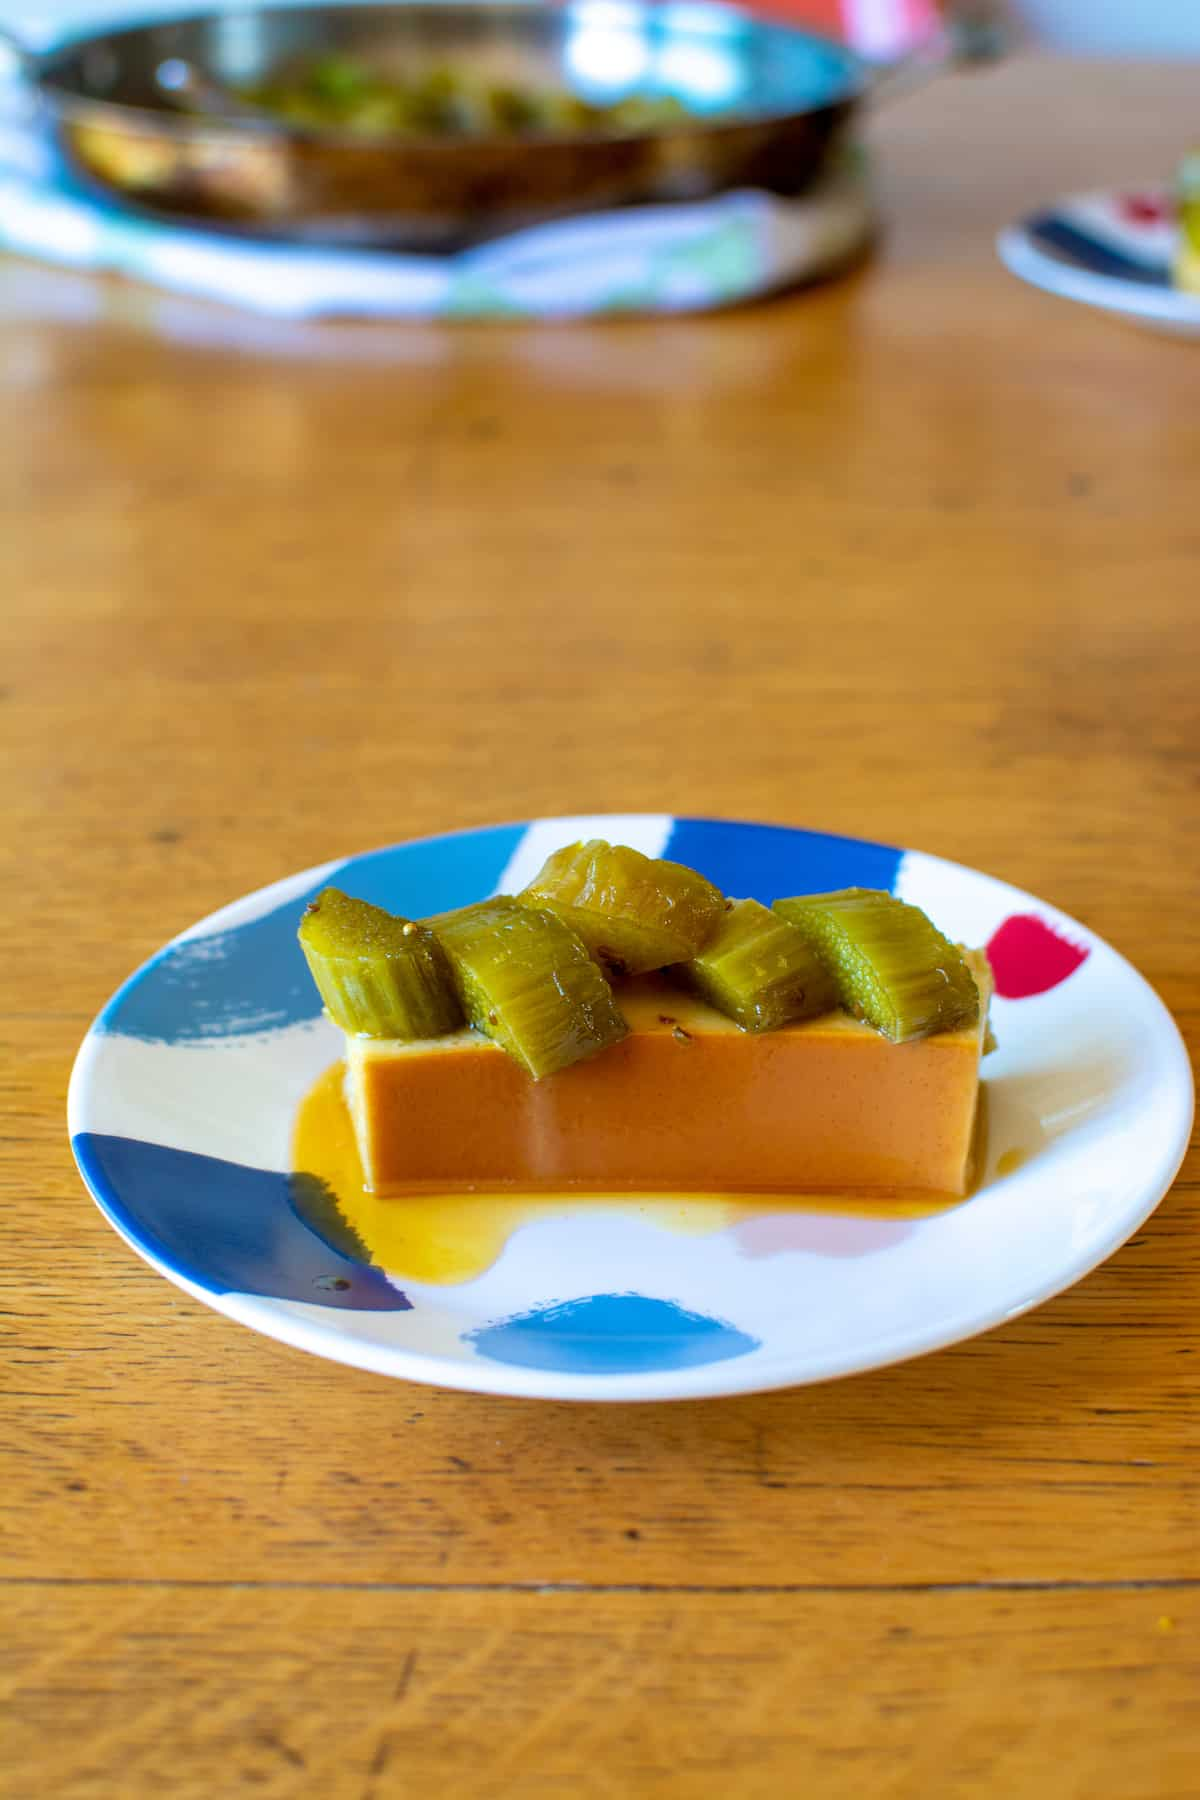 A piece of flan sitting on a blue and white dessert plate with pieces of green rhubarb sitting on top on a wood table.